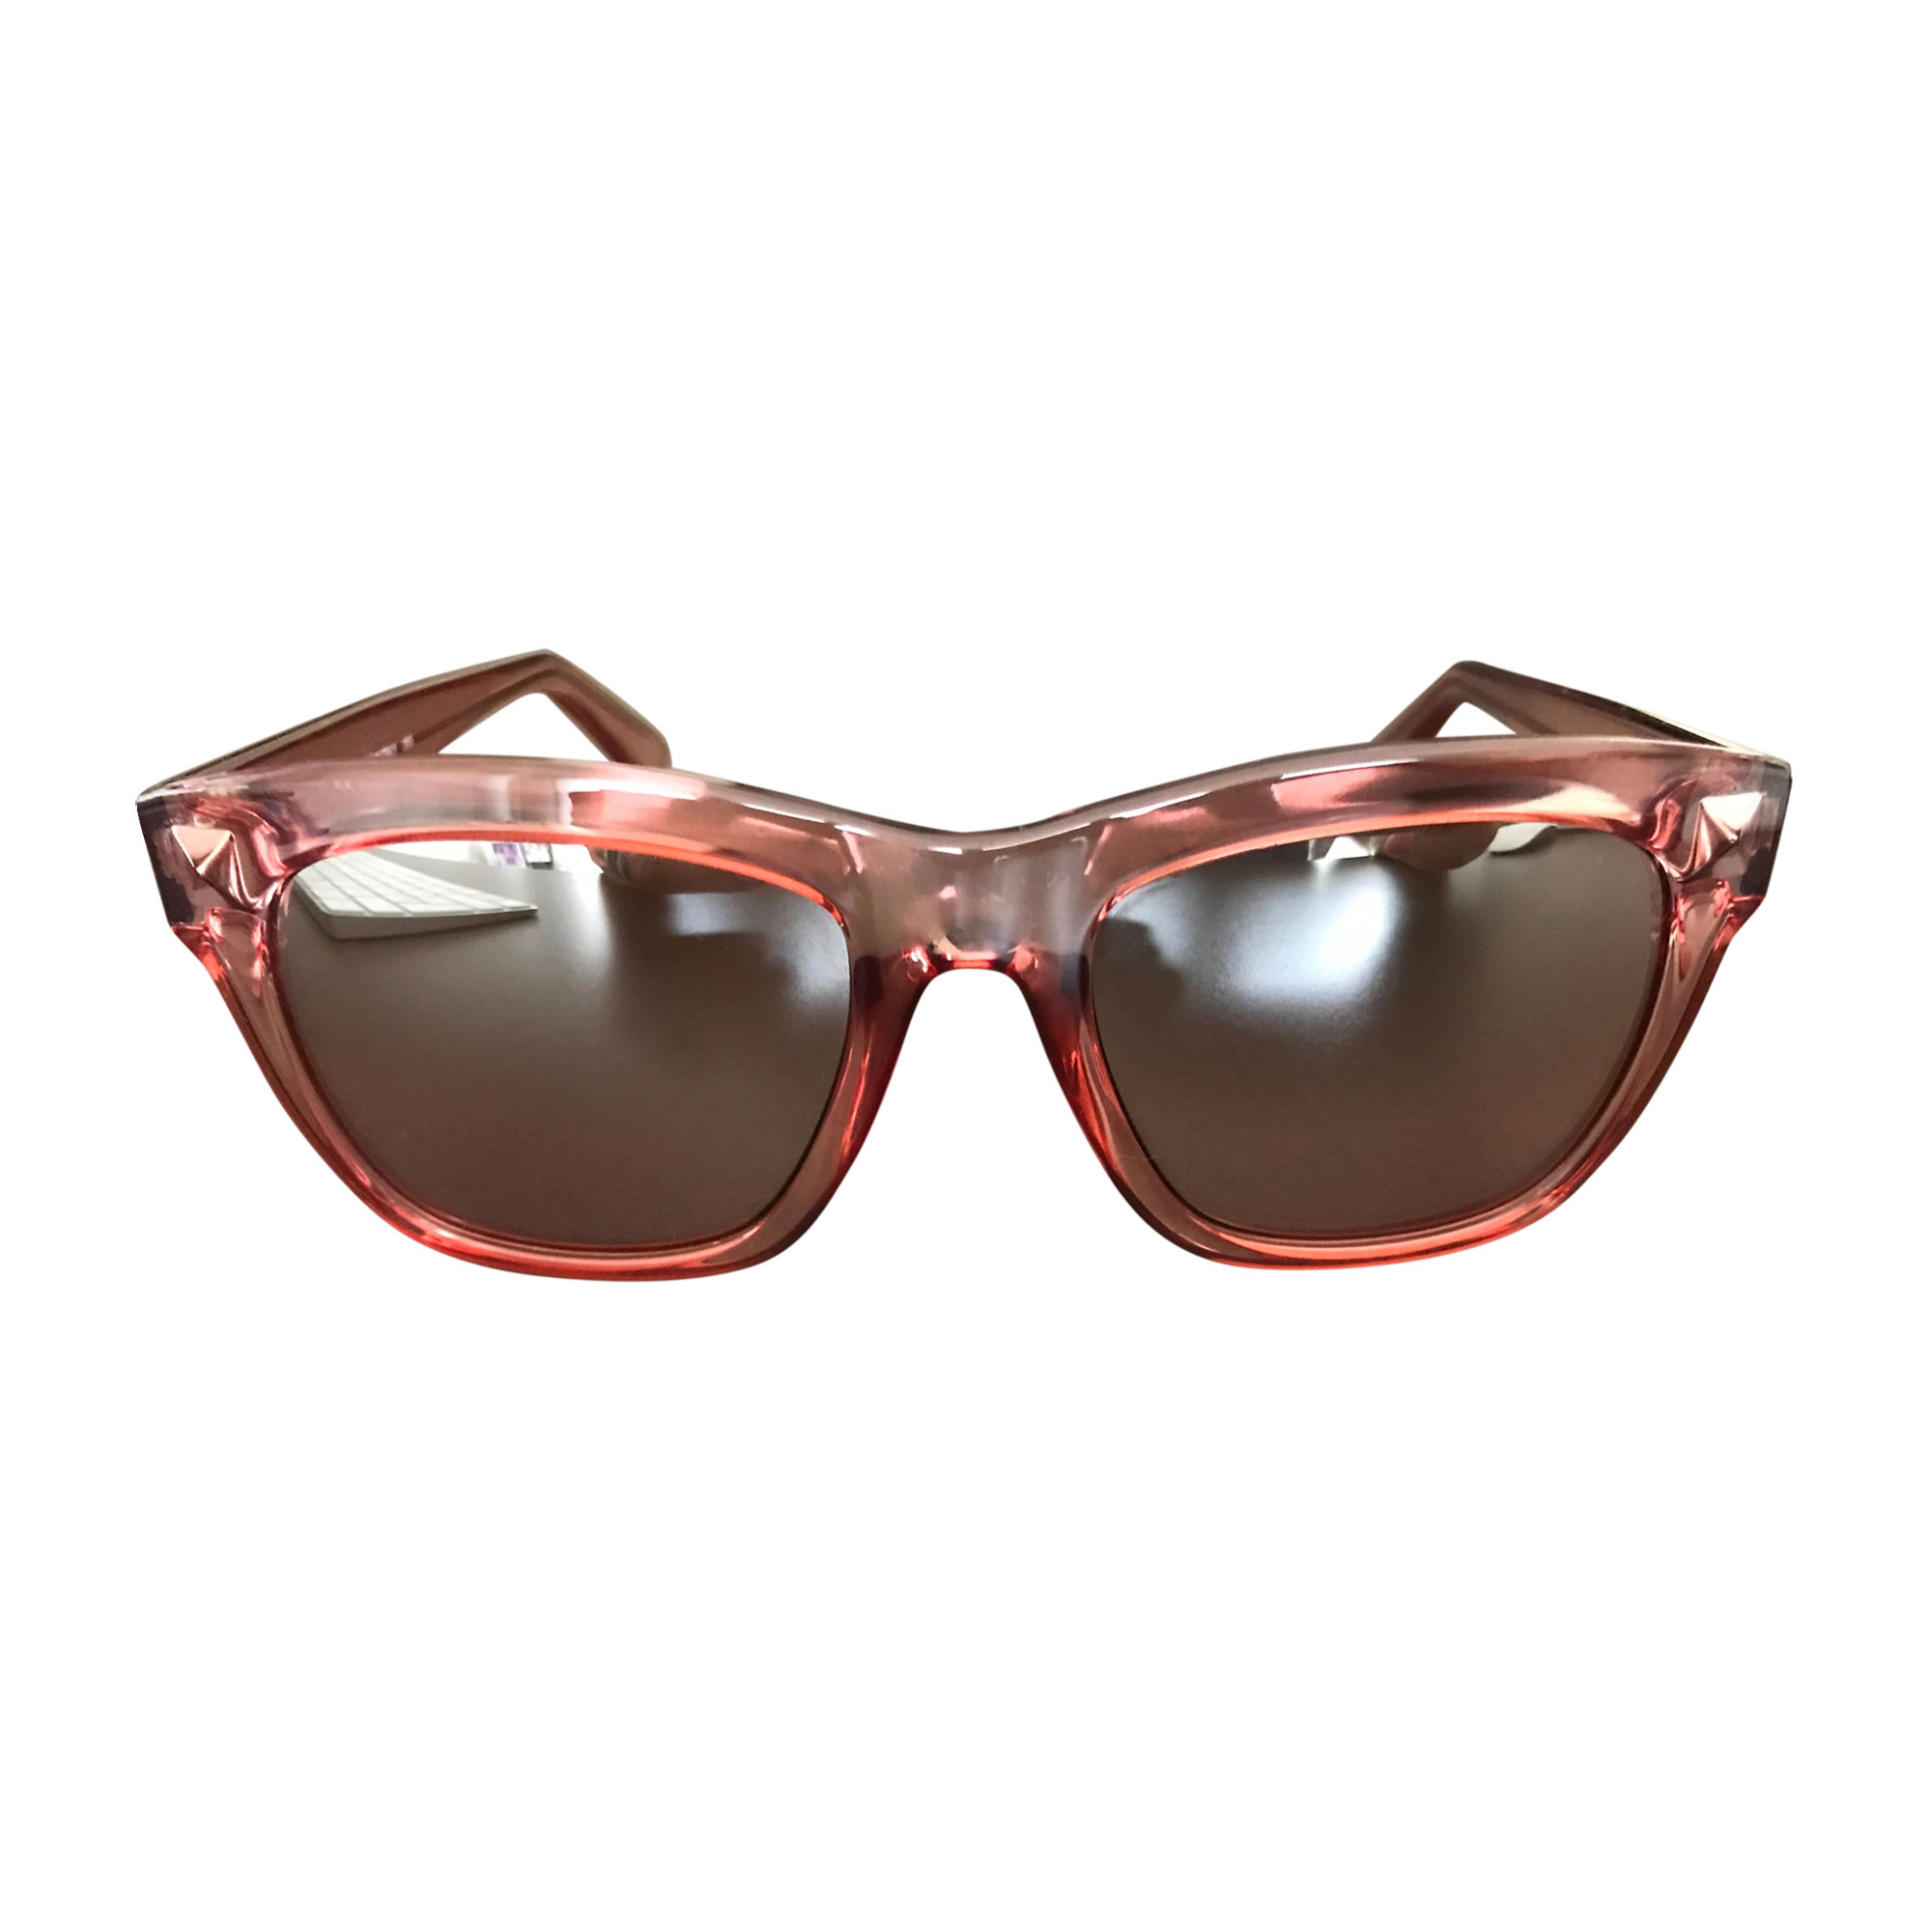 Sunglasses VALENTINO Pink, fuchsia, light pink